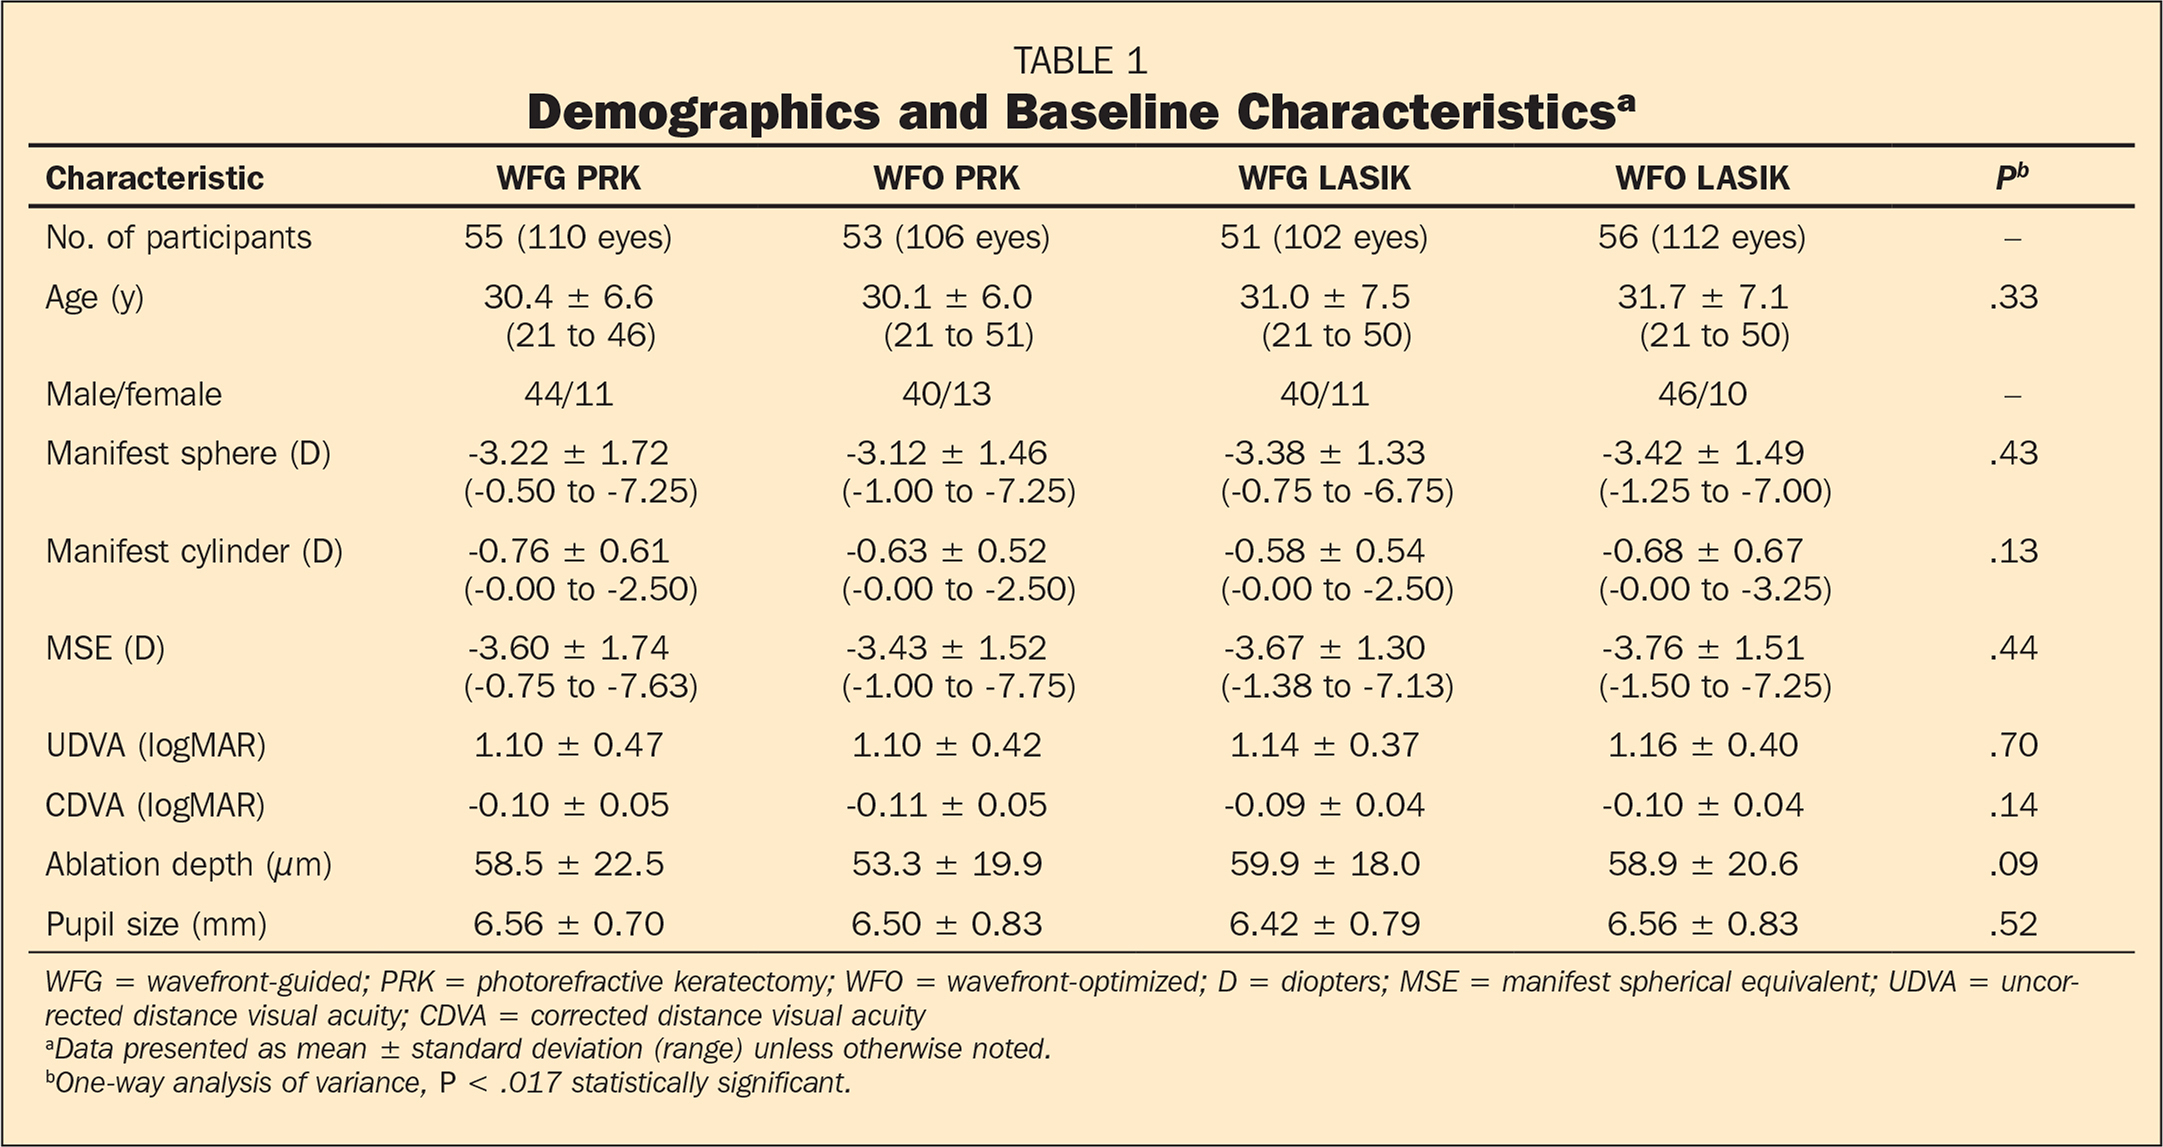 Demographics and Baseline Characteristicsa